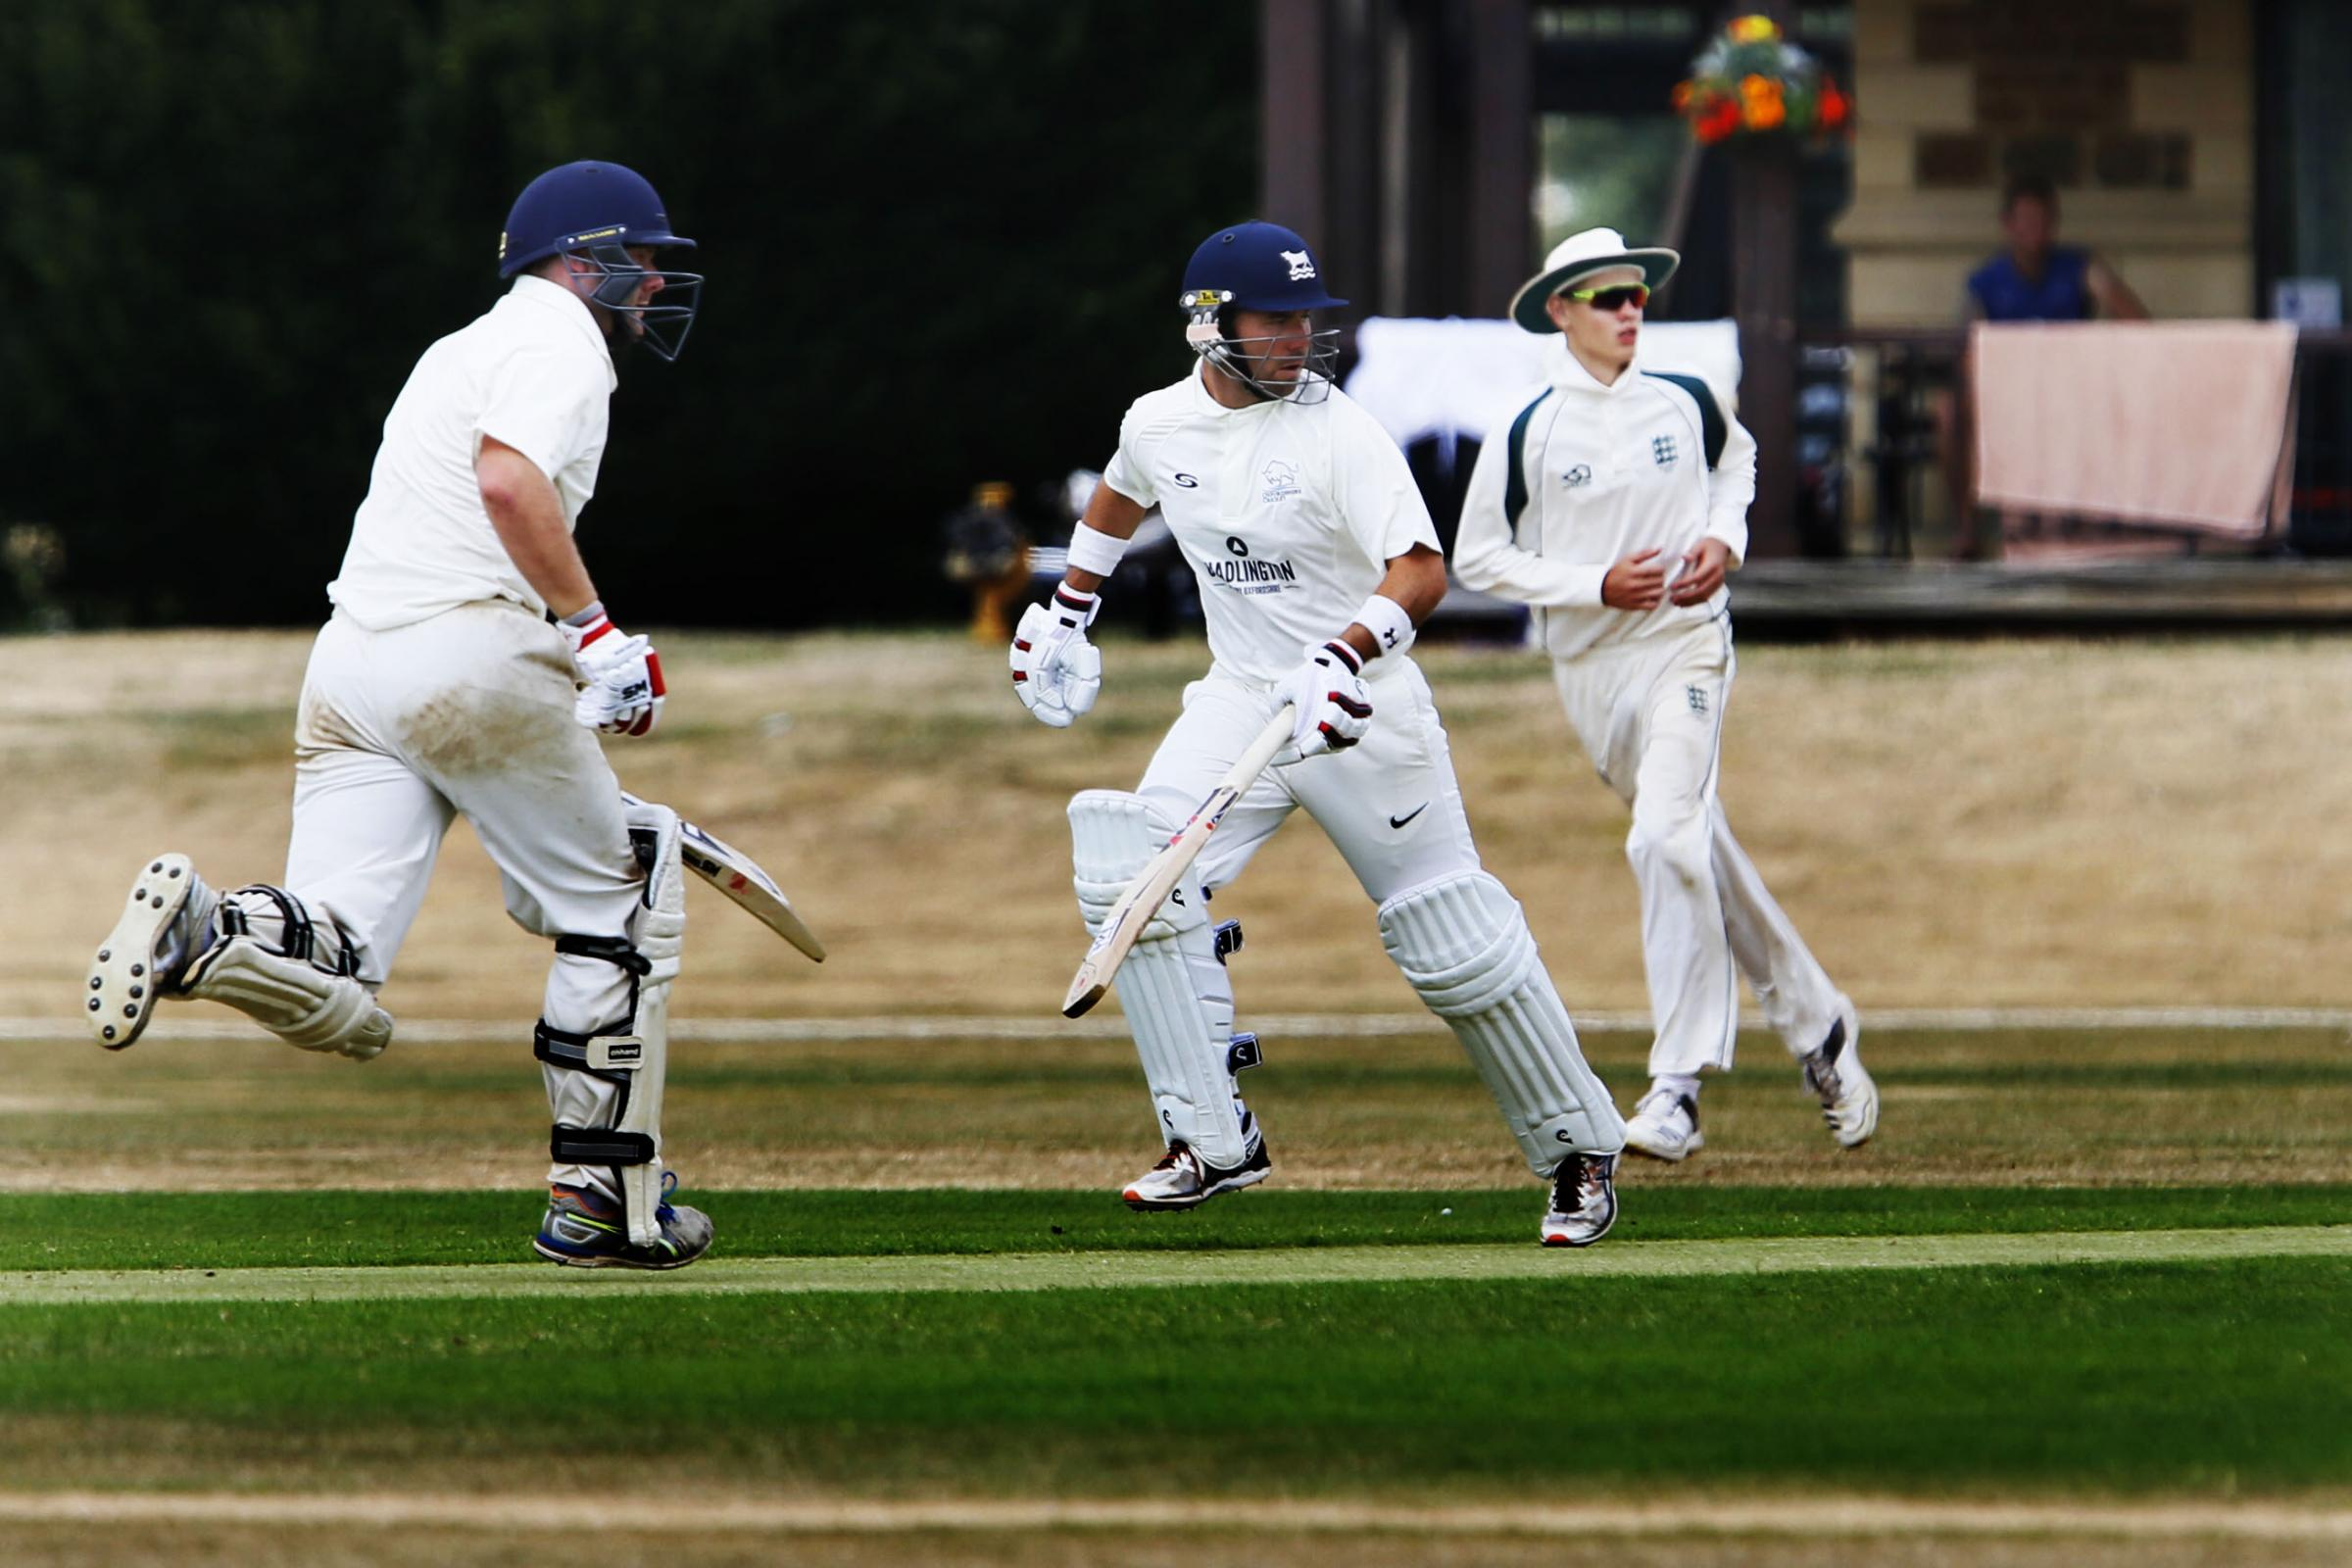 IN THE RUNS: Harry Smith (left) and Richard Kaufman add to their tally in Oxfordshire's win over Dorset earlier this month. The duo will be hoping for more of the same when Oxon host Wales this weekendPicture: Ed Nix